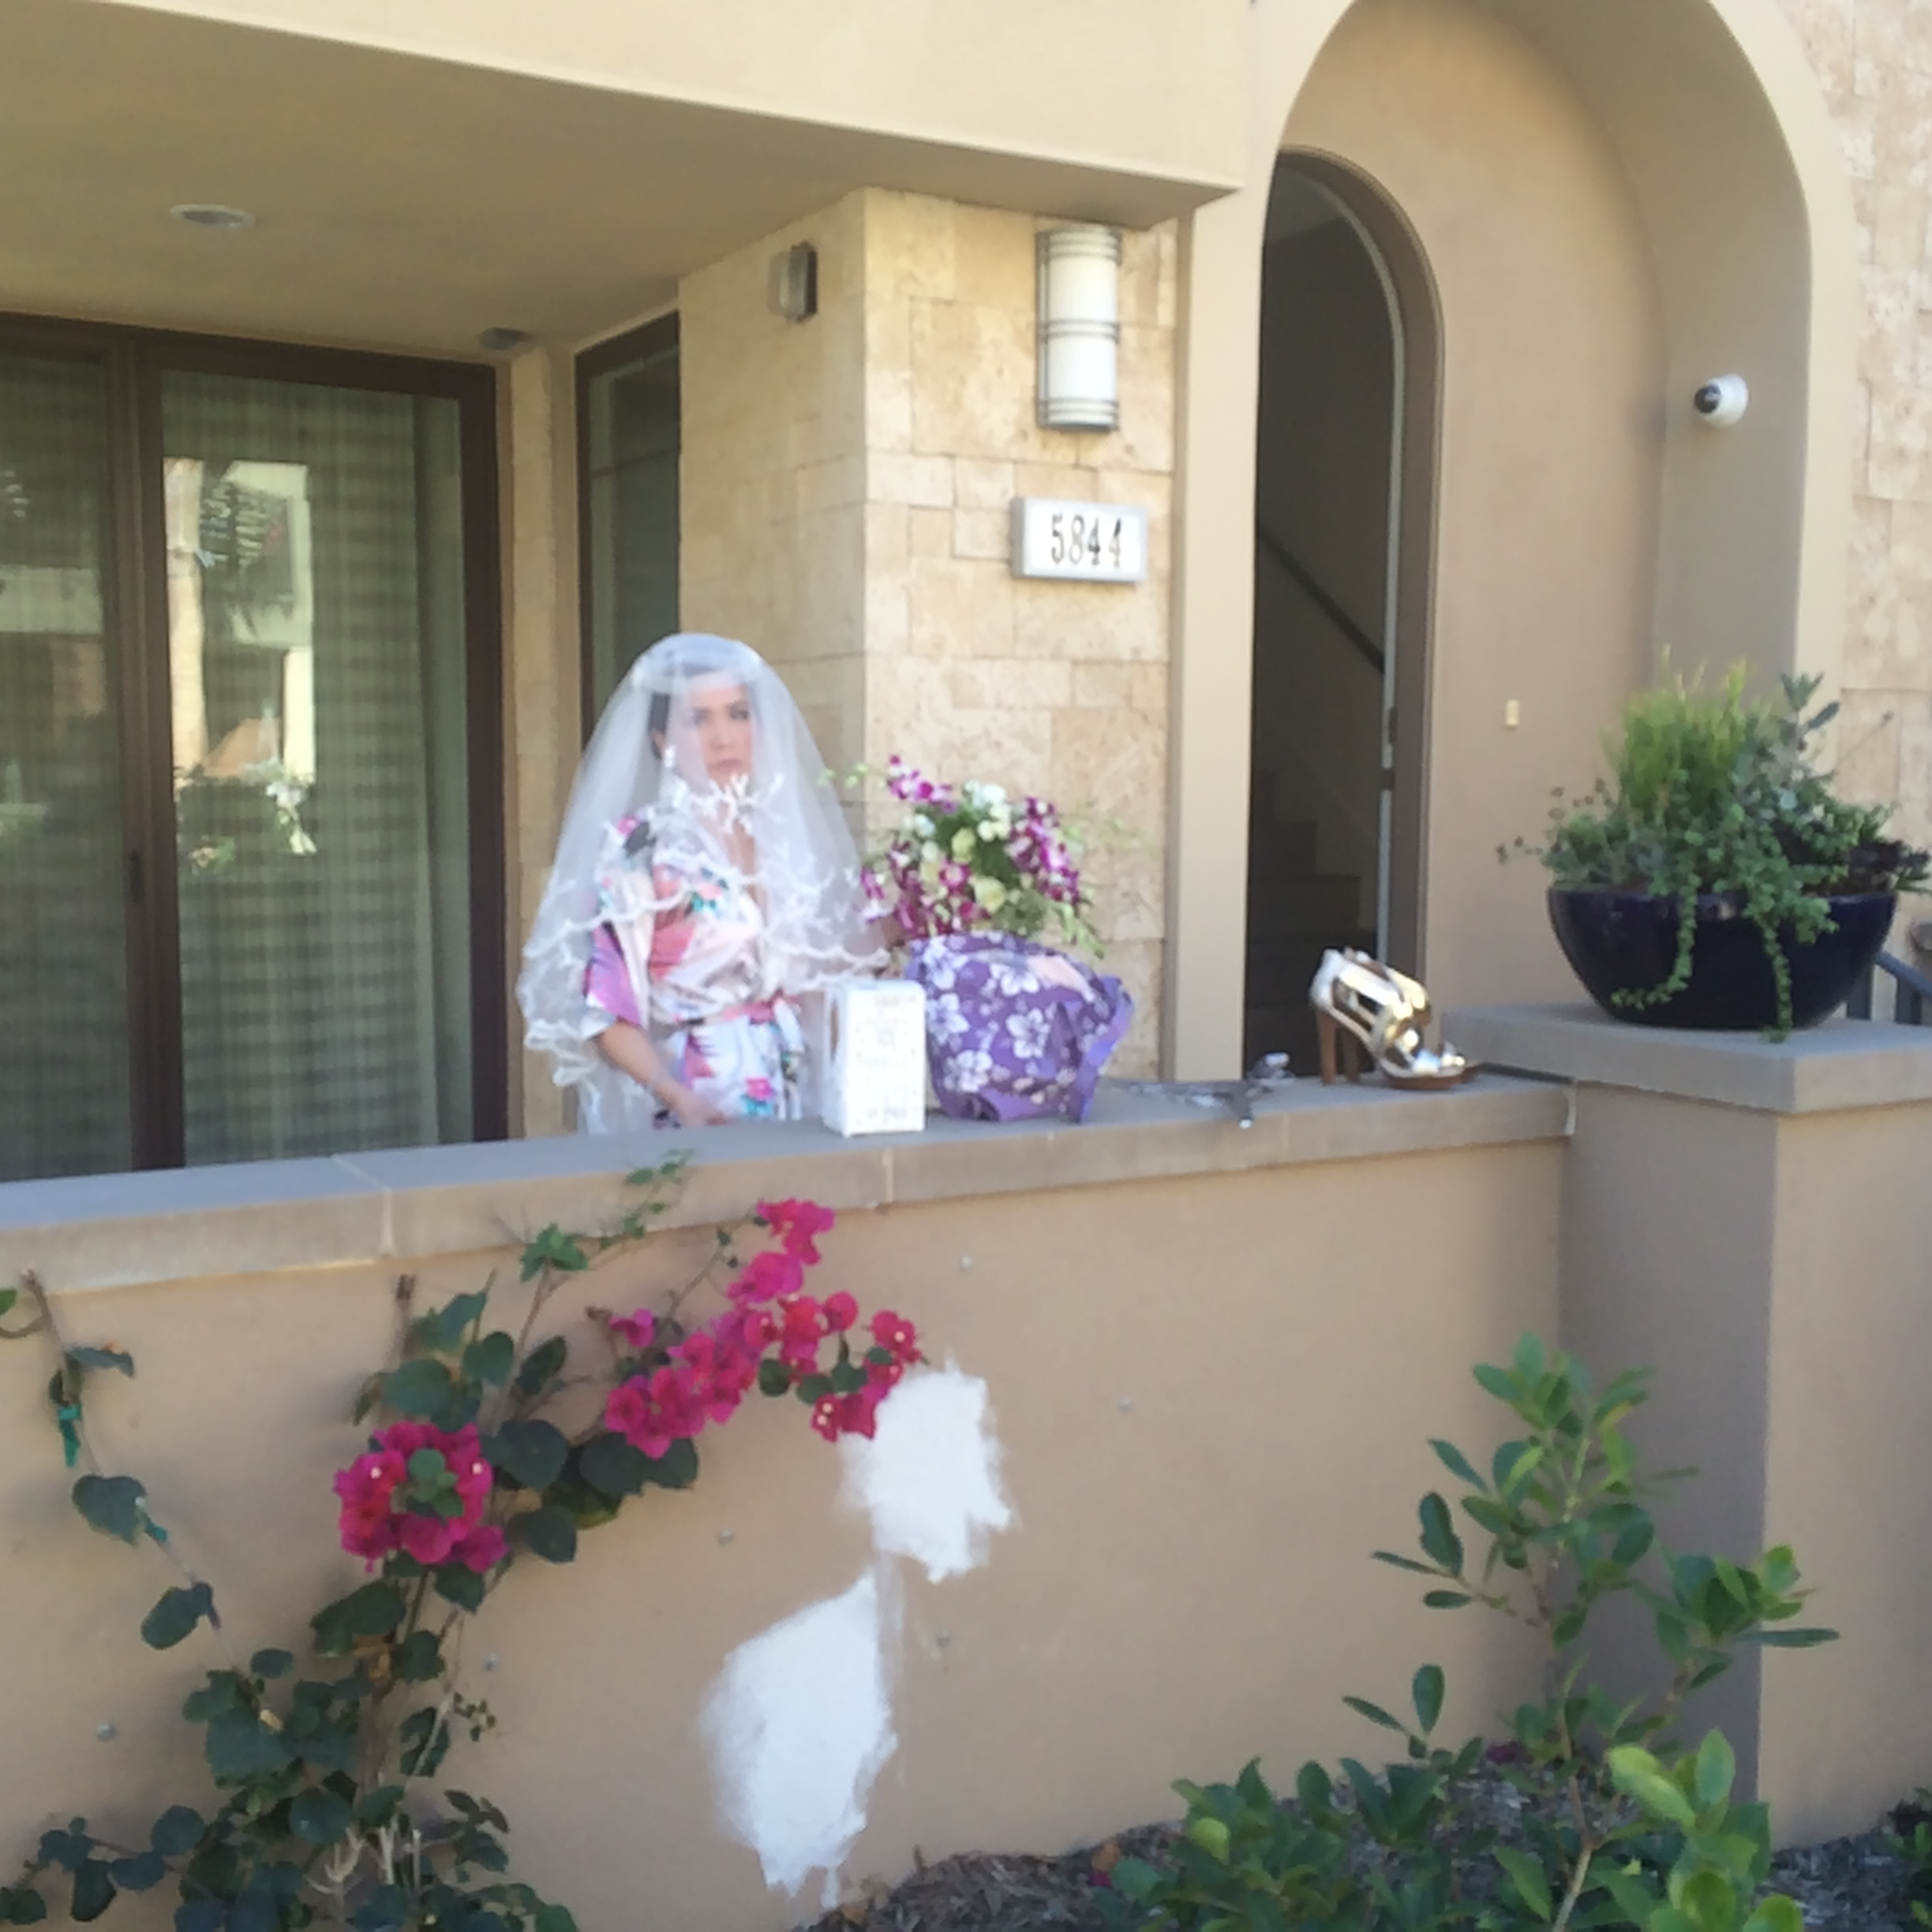 """This one says: """"I'm all ready to get married! I spent hours and $$$ on this look. Yet I didn't spend minutes or ¢¢¢ on fixing the big discolored stucco patches outside our house."""""""